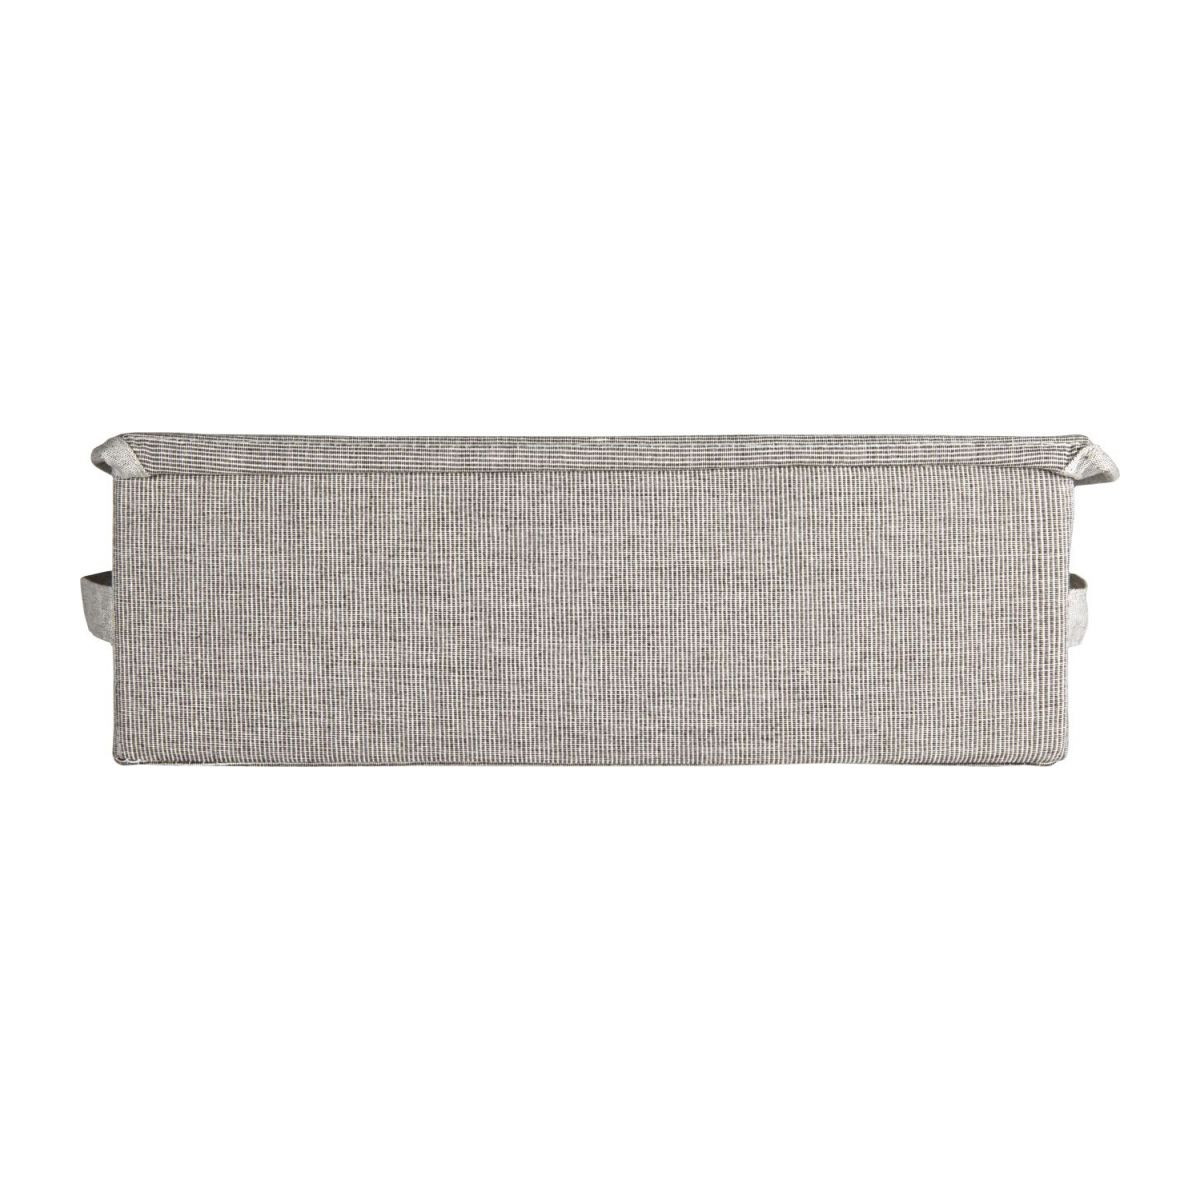 Small Storage basket, grey fabric and bamboo n°4